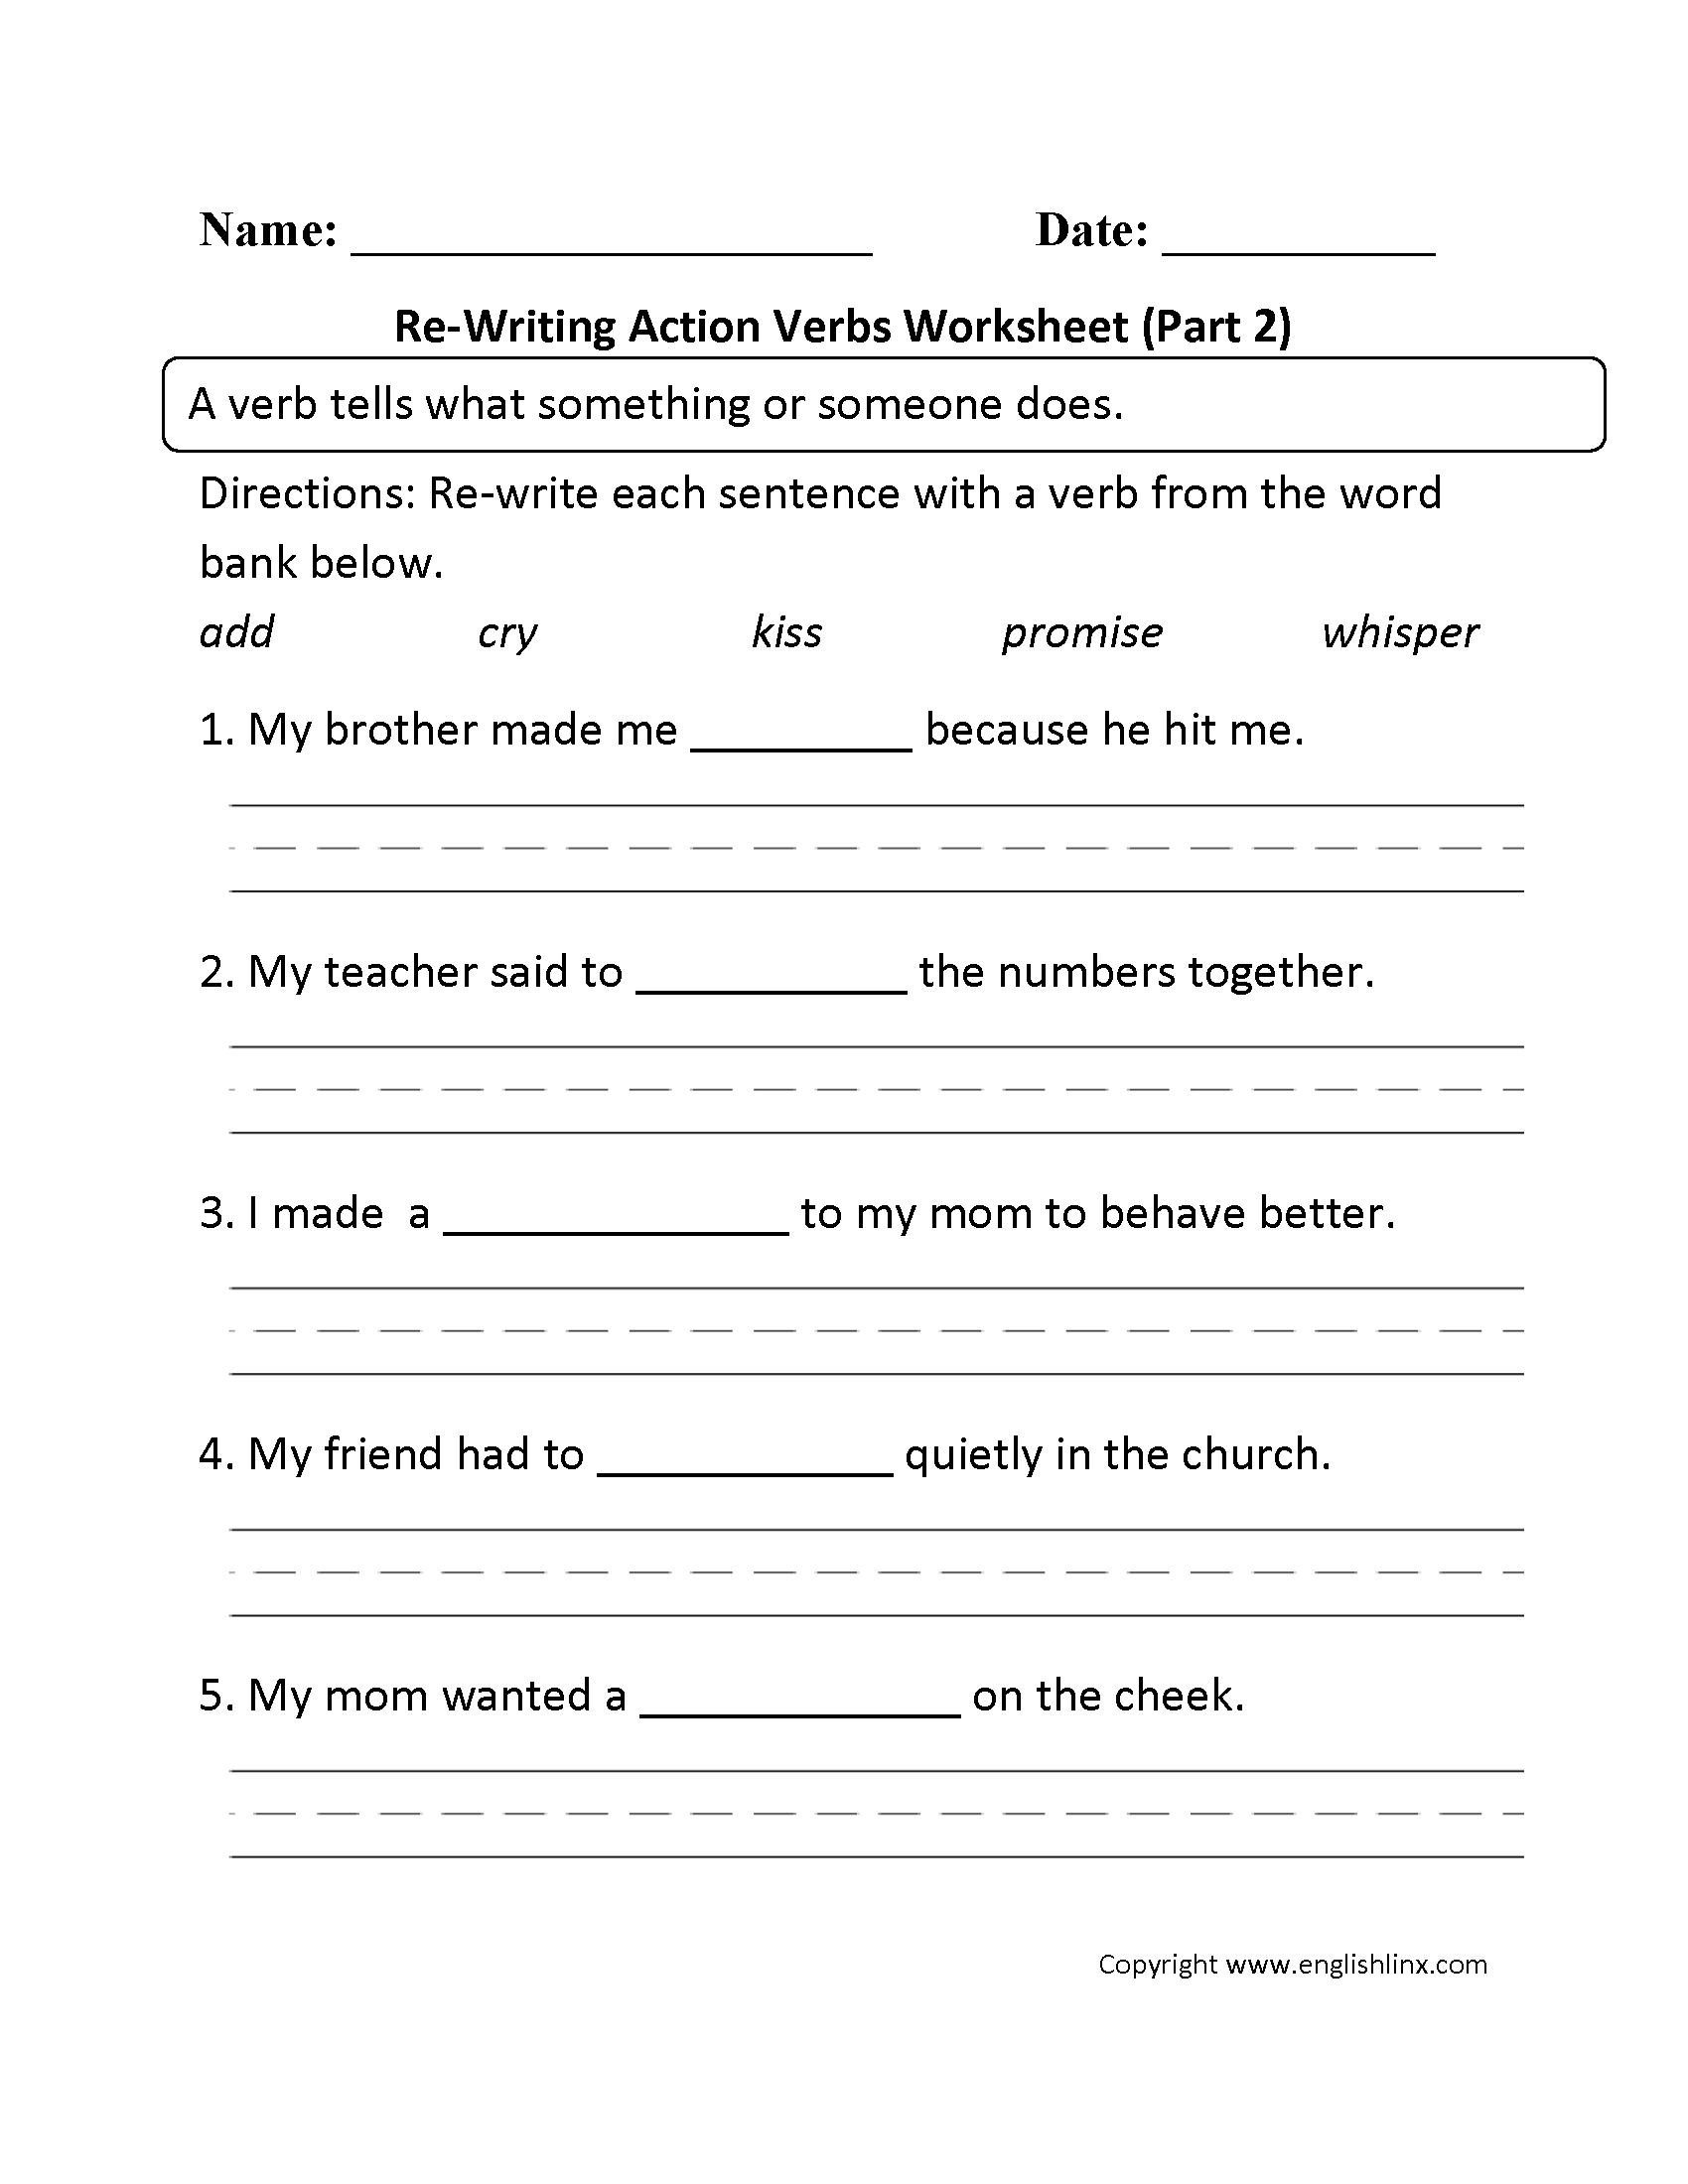 hight resolution of Re-Writing Action Verbs Worksheet Part 2   Action verbs worksheet